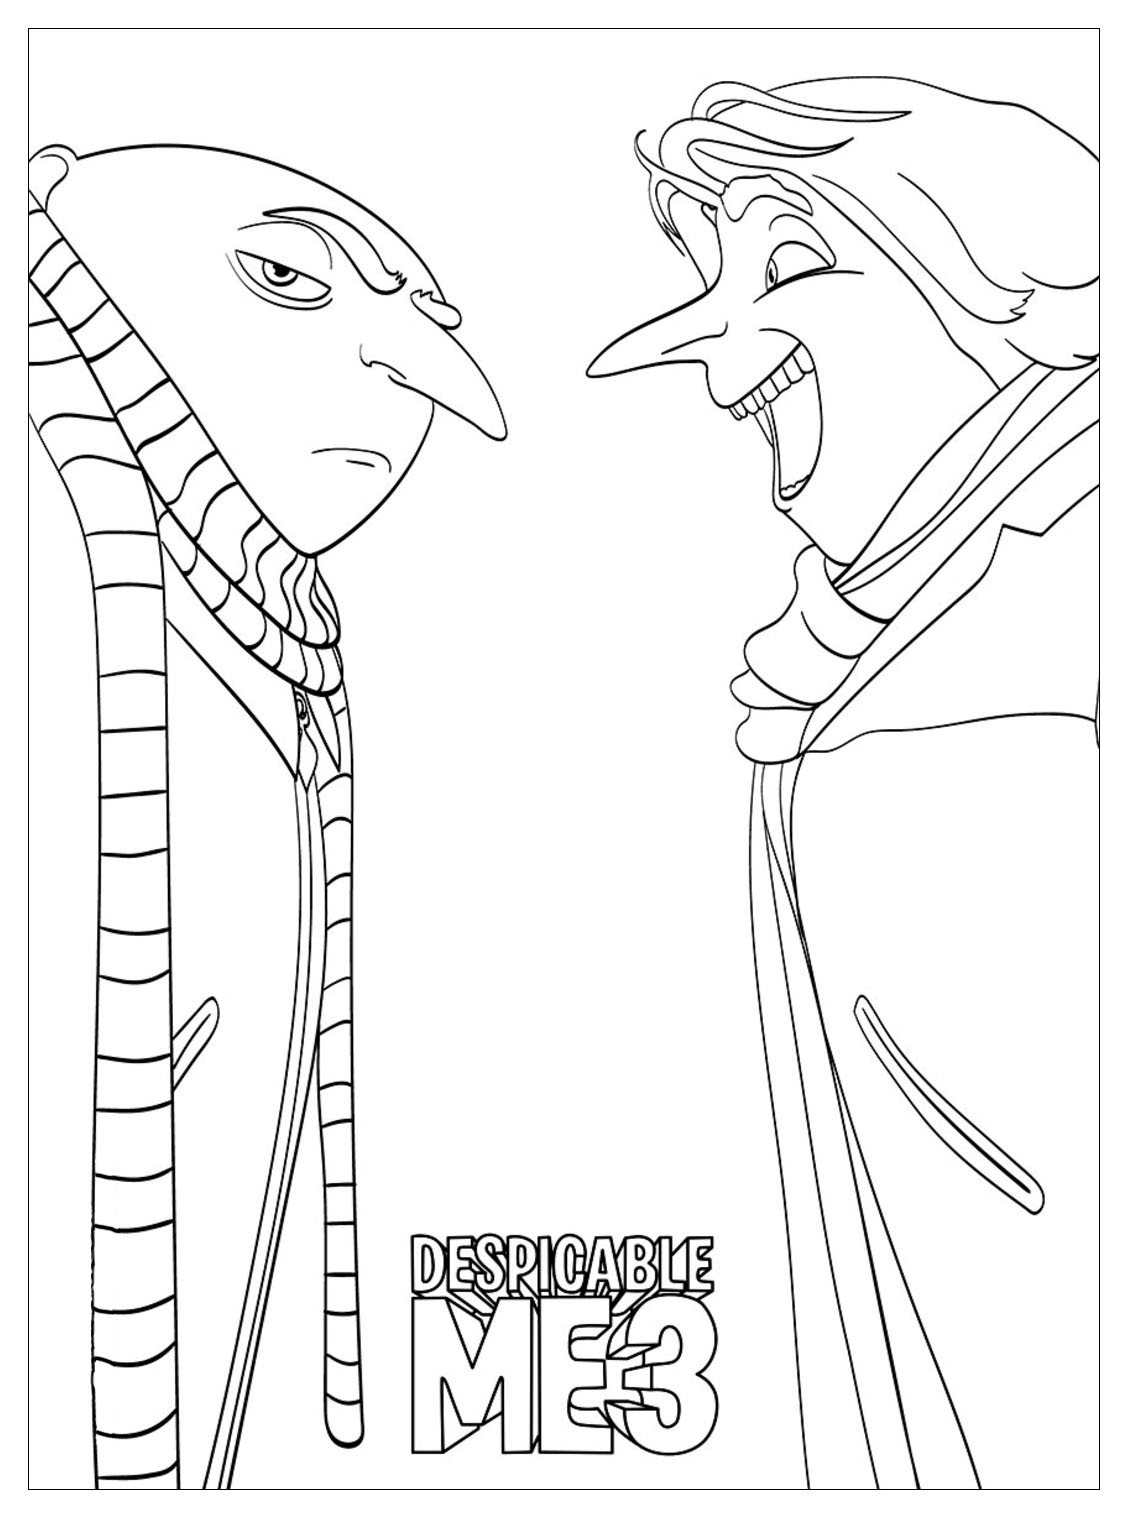 Despicable Coloring Pages Despicable Me To Print For Free Despicable Me Kids Coloring Pages